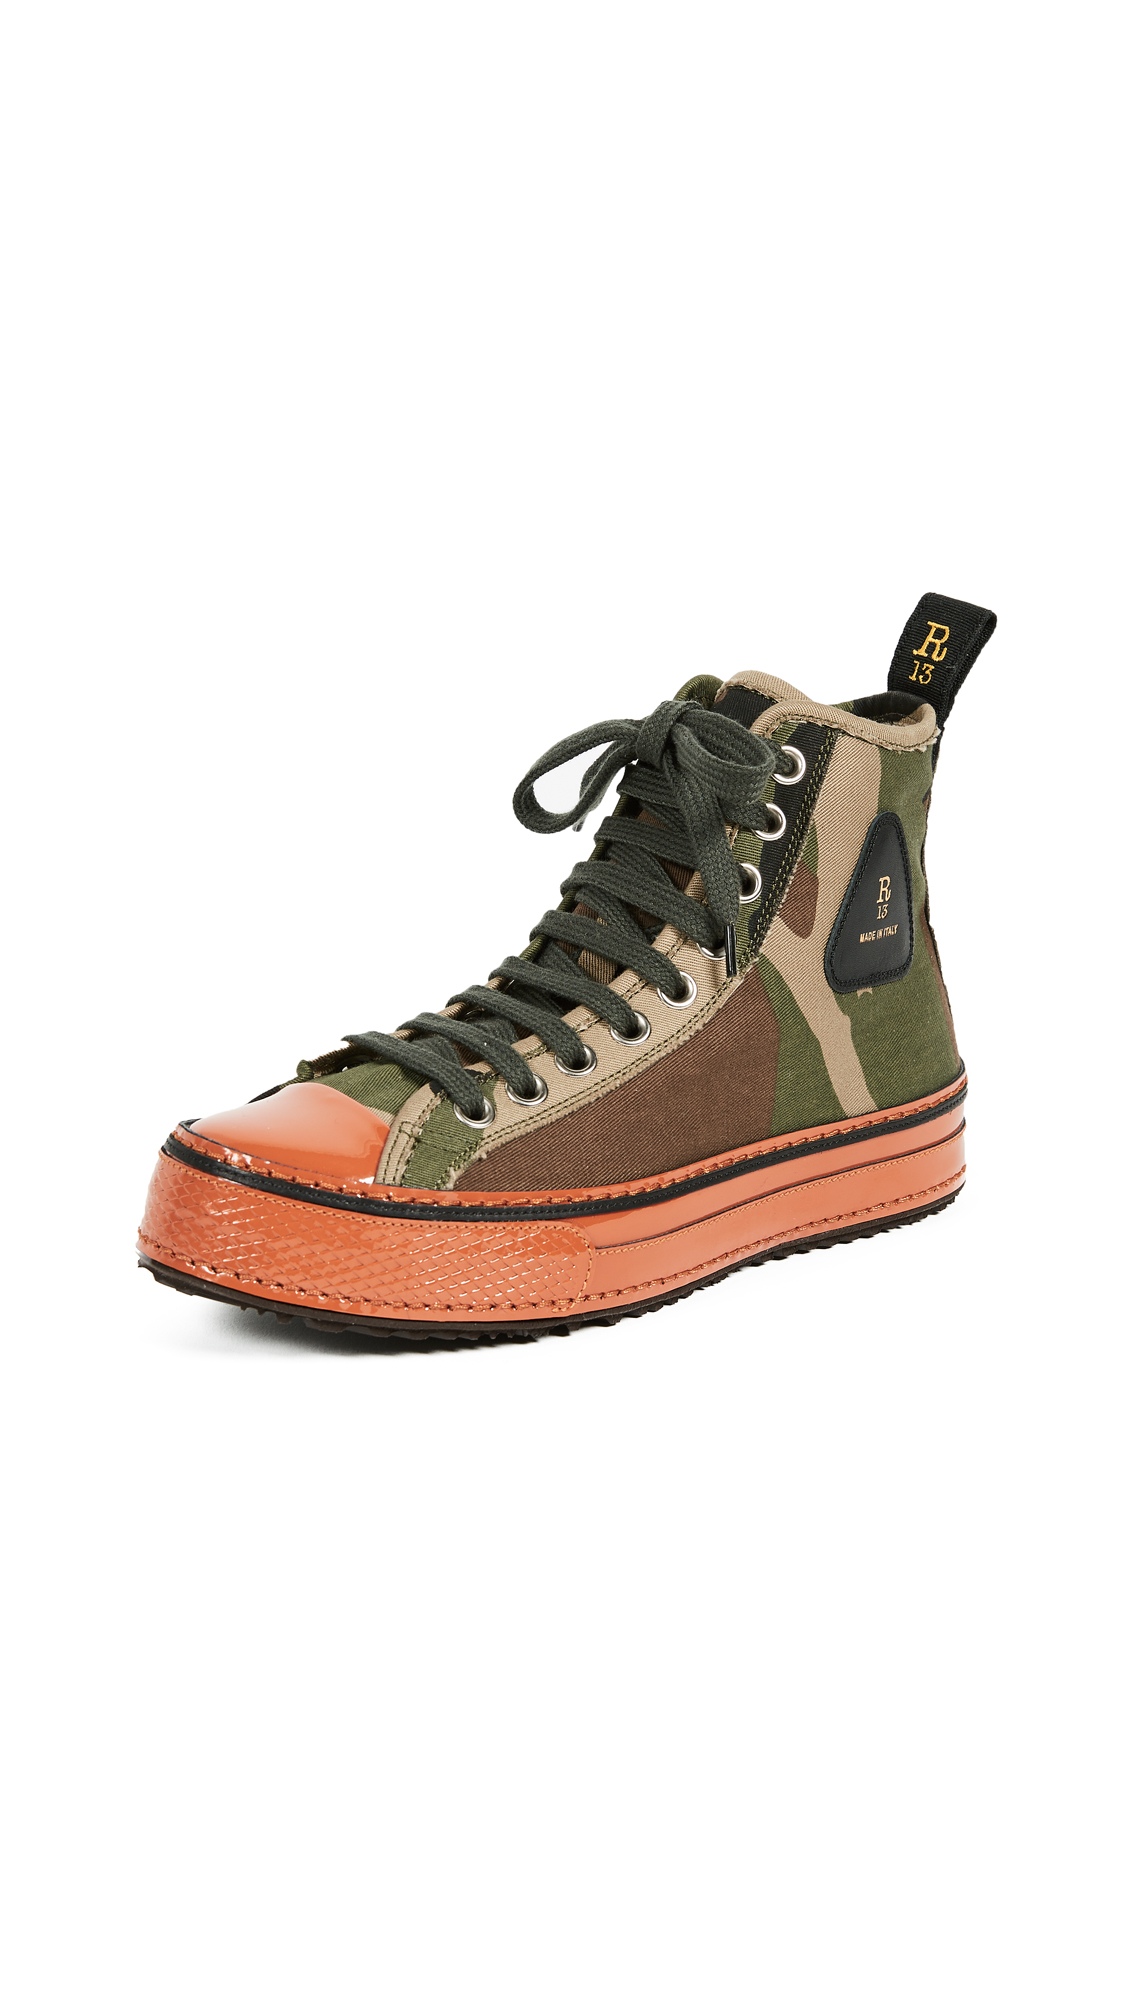 R13 Canvas High Top Sneakers - Camo/Orange